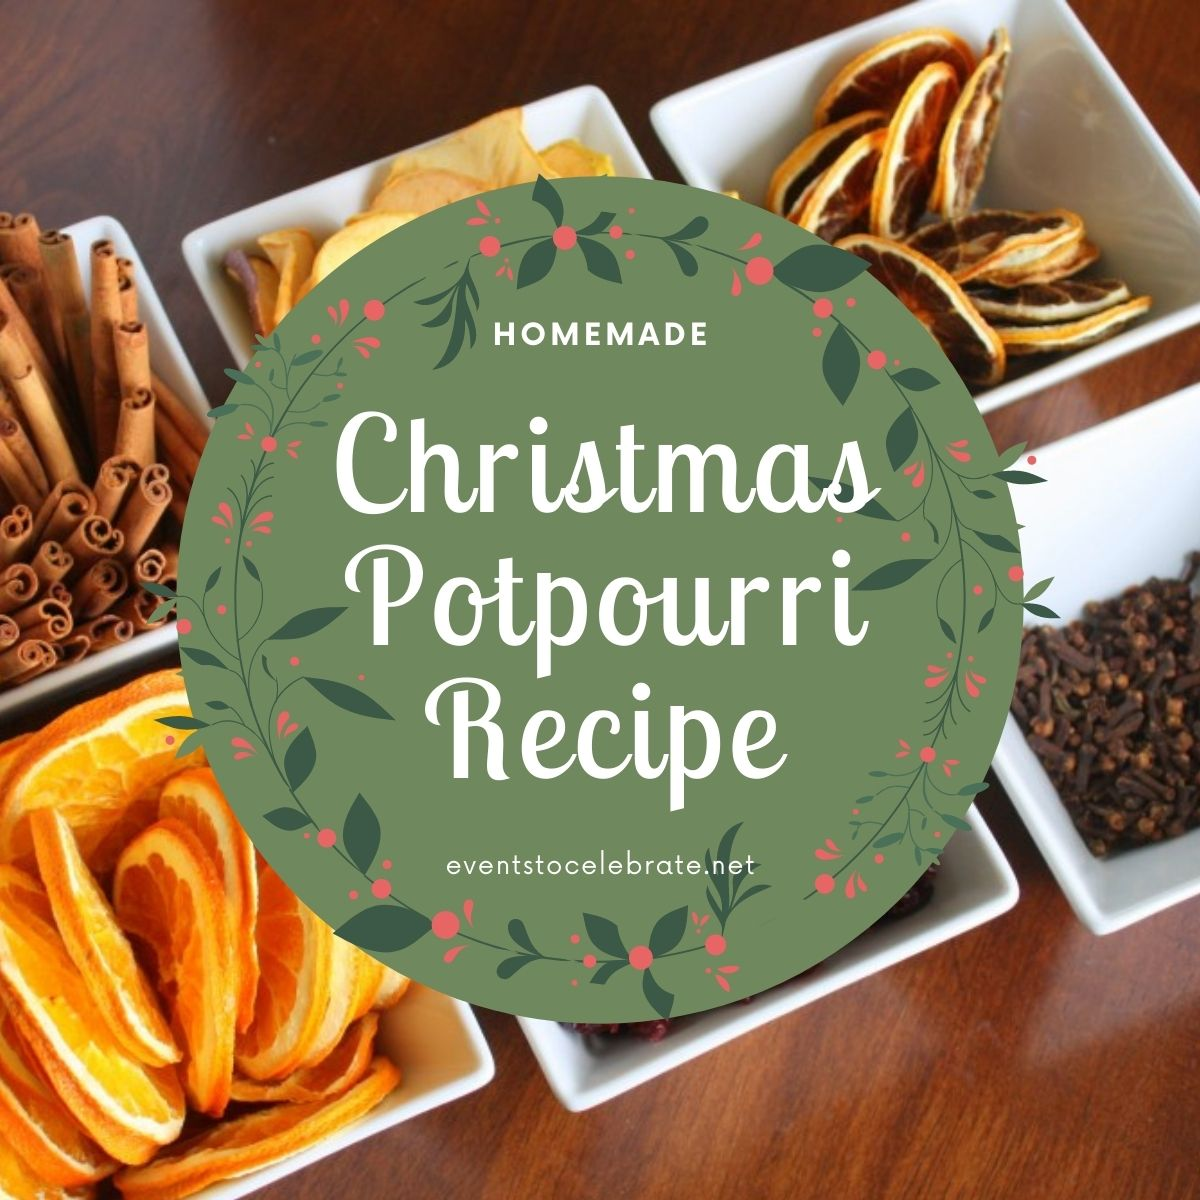 Homemade Christmas Potpourri Recipe